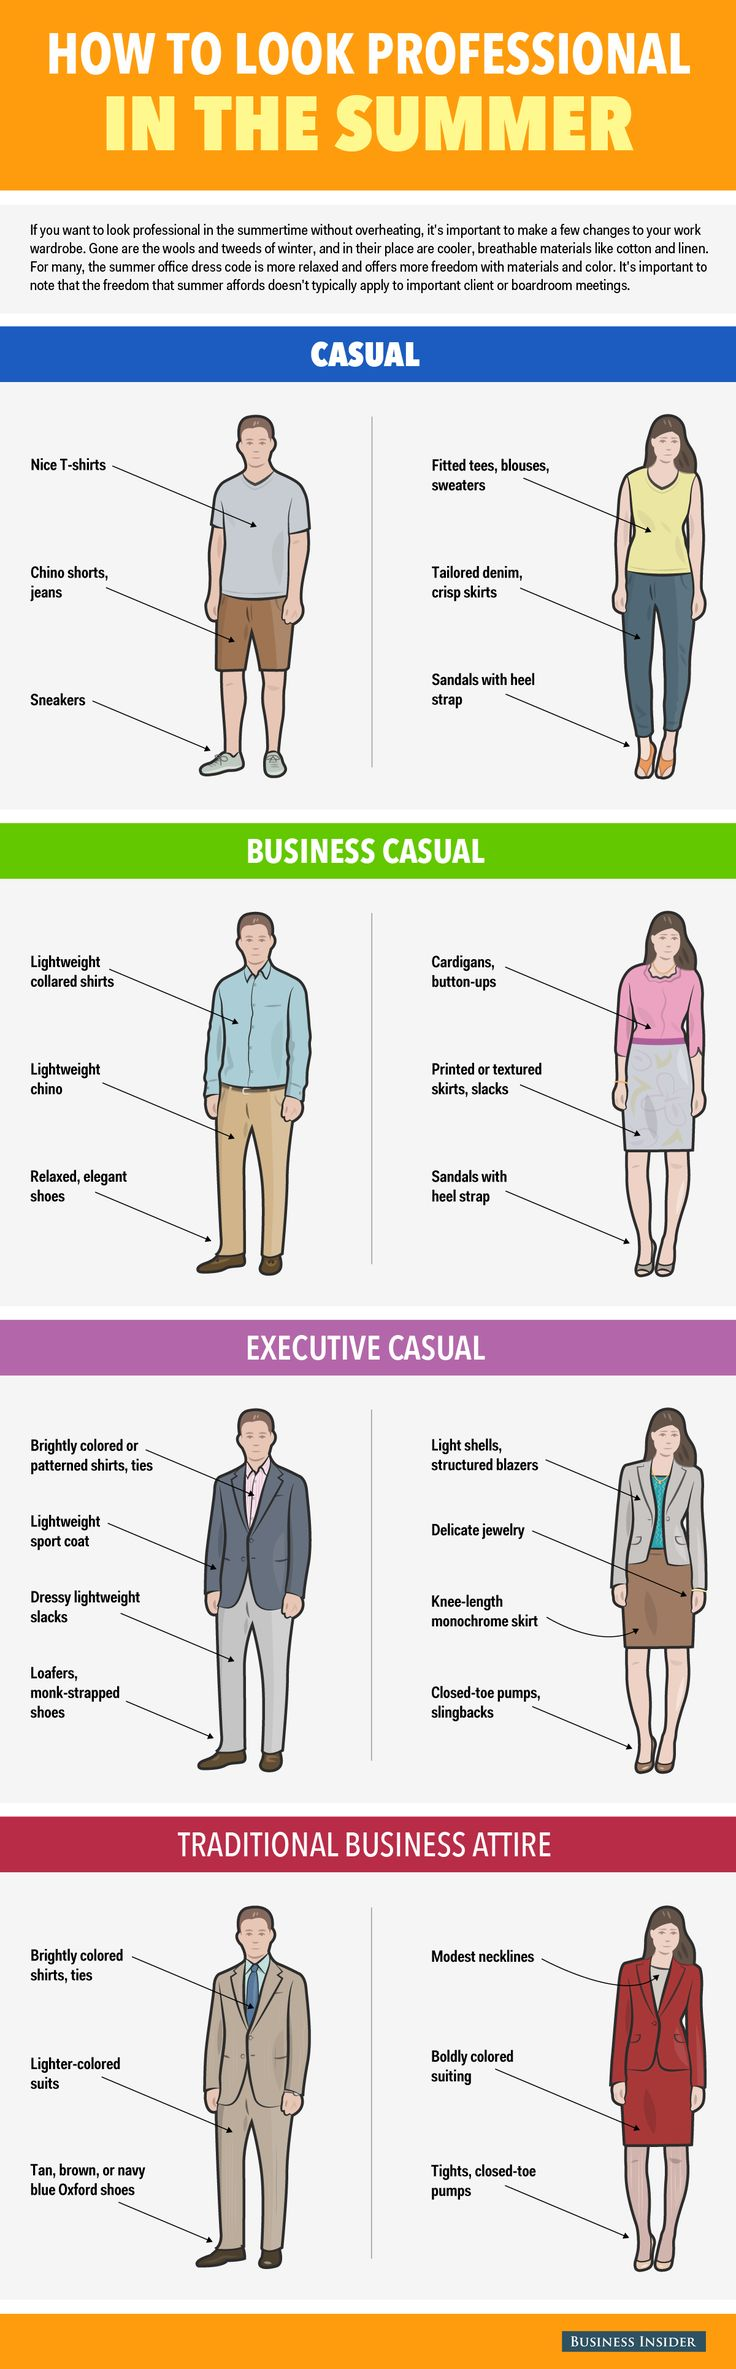 171 best images about Business Casual Attire on Pinterest | Work ...